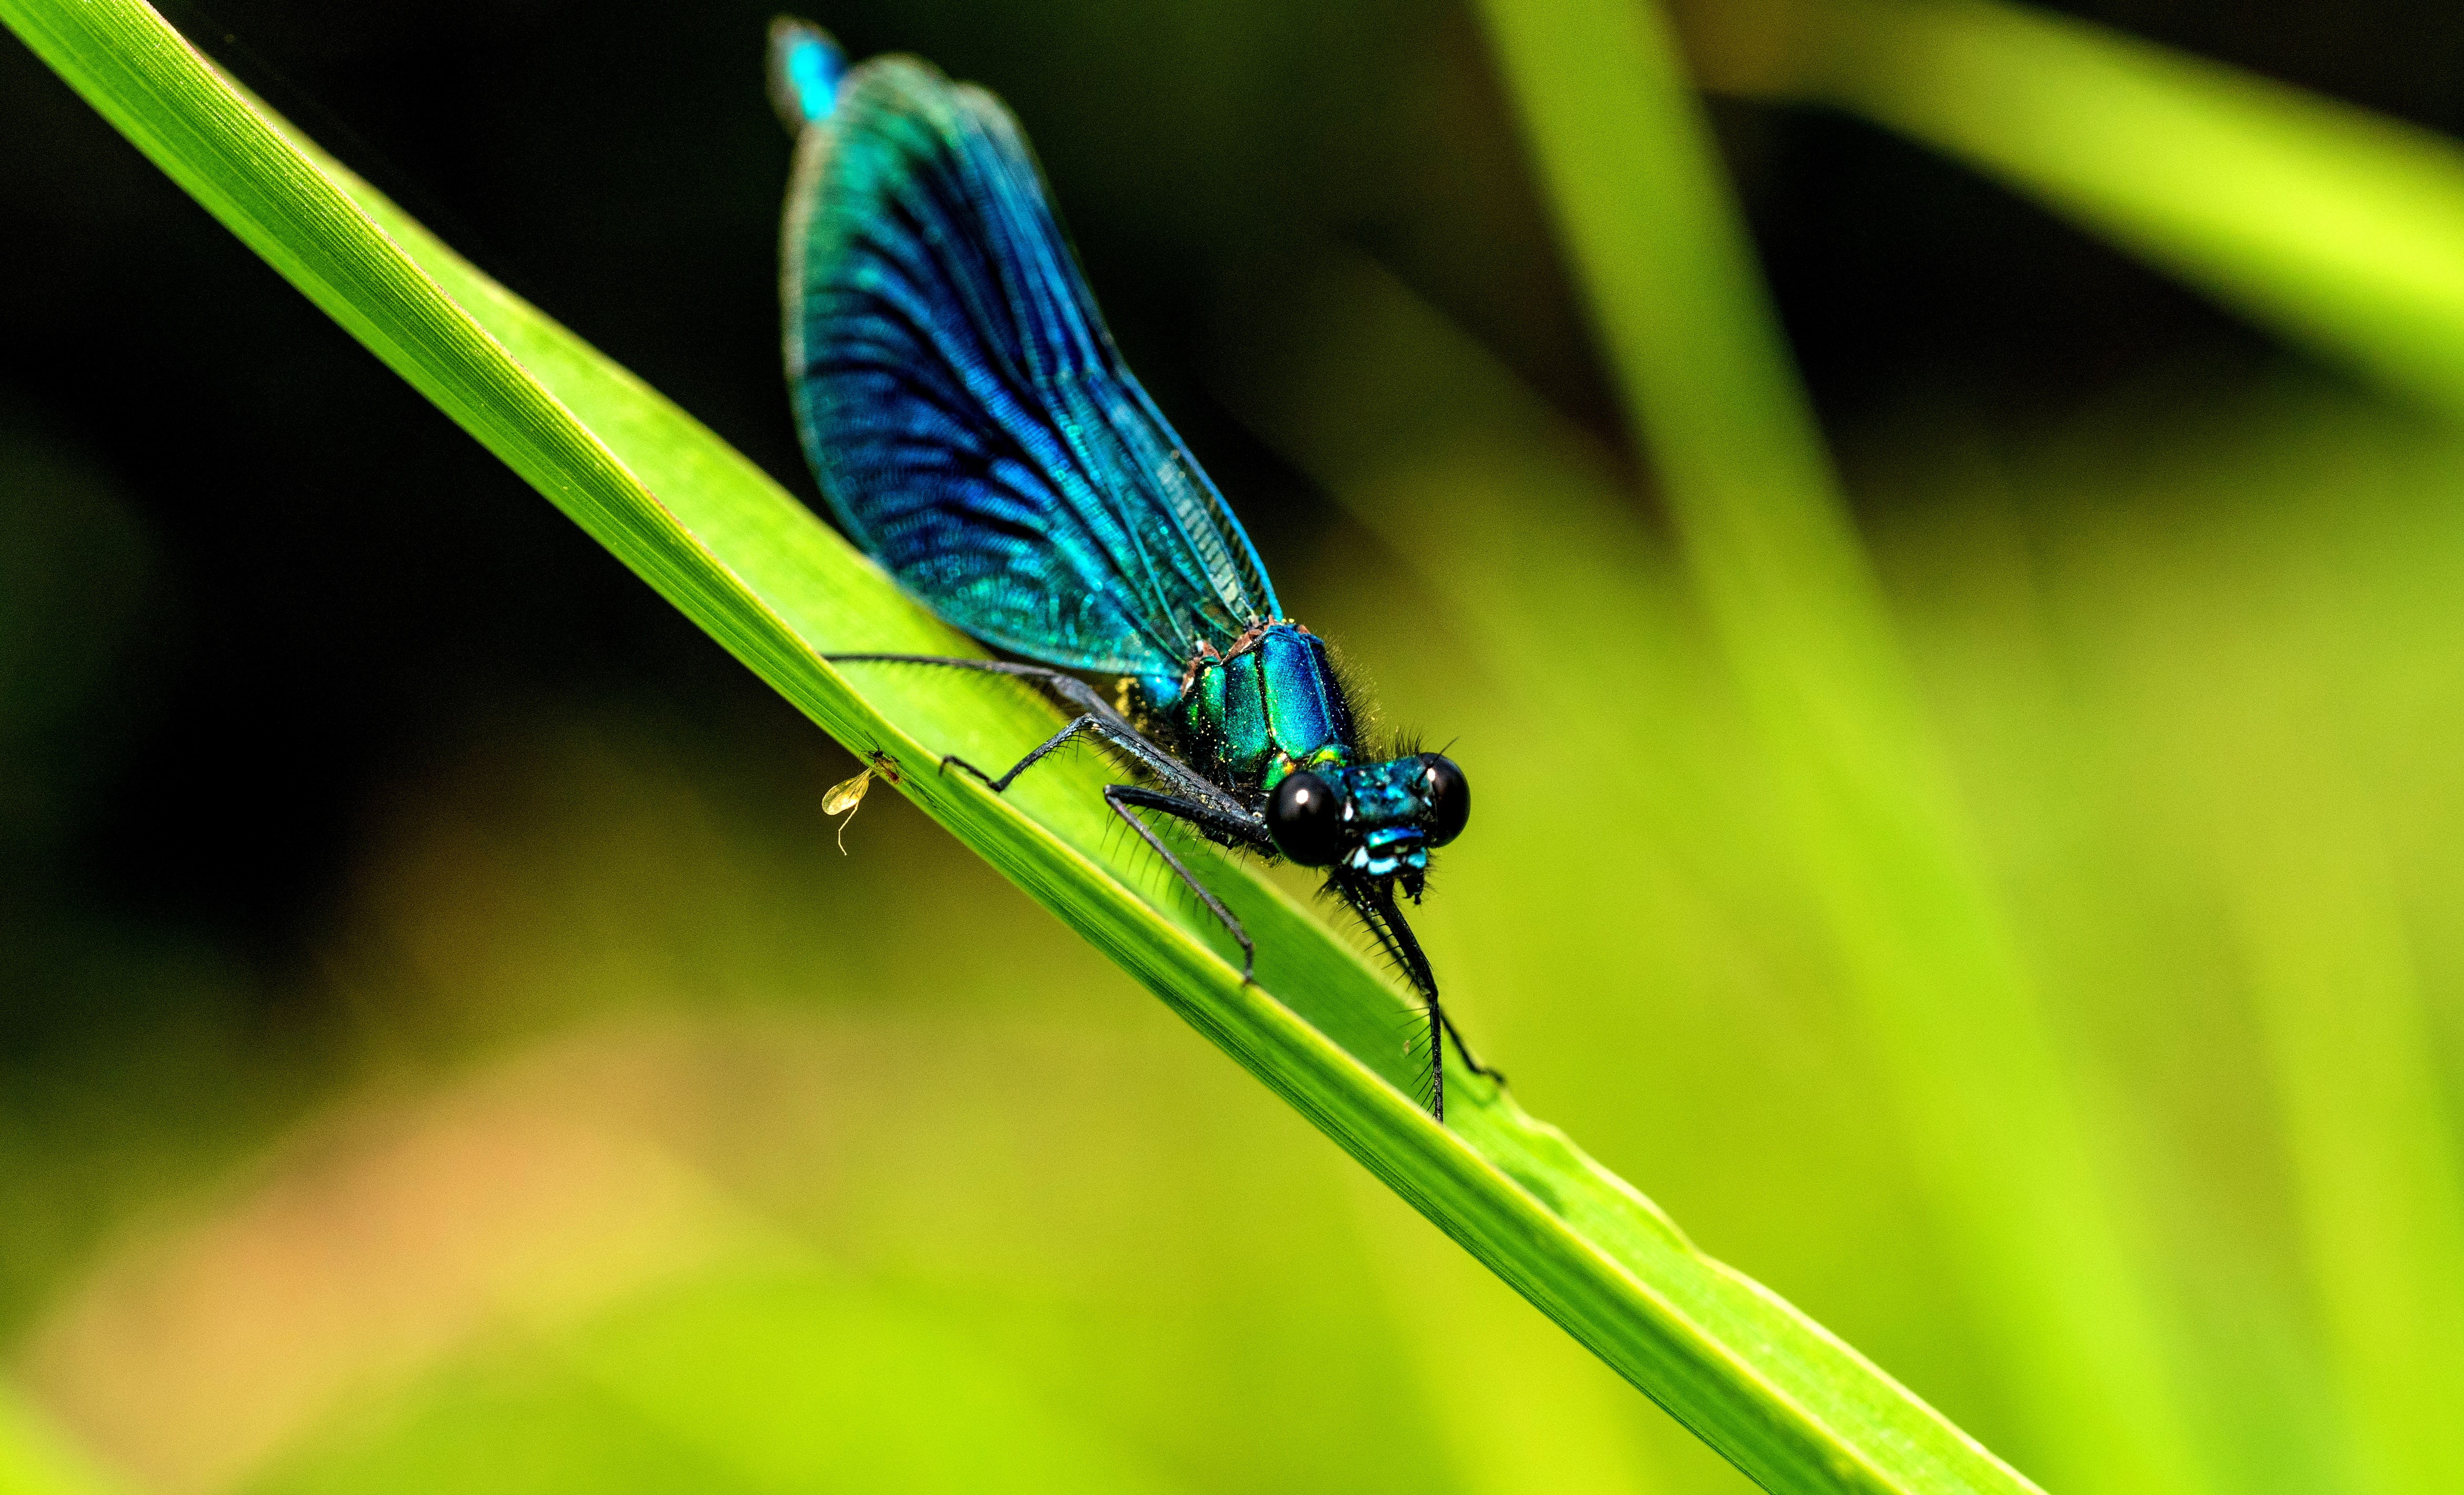 blue and green dragonfly on gren leaf